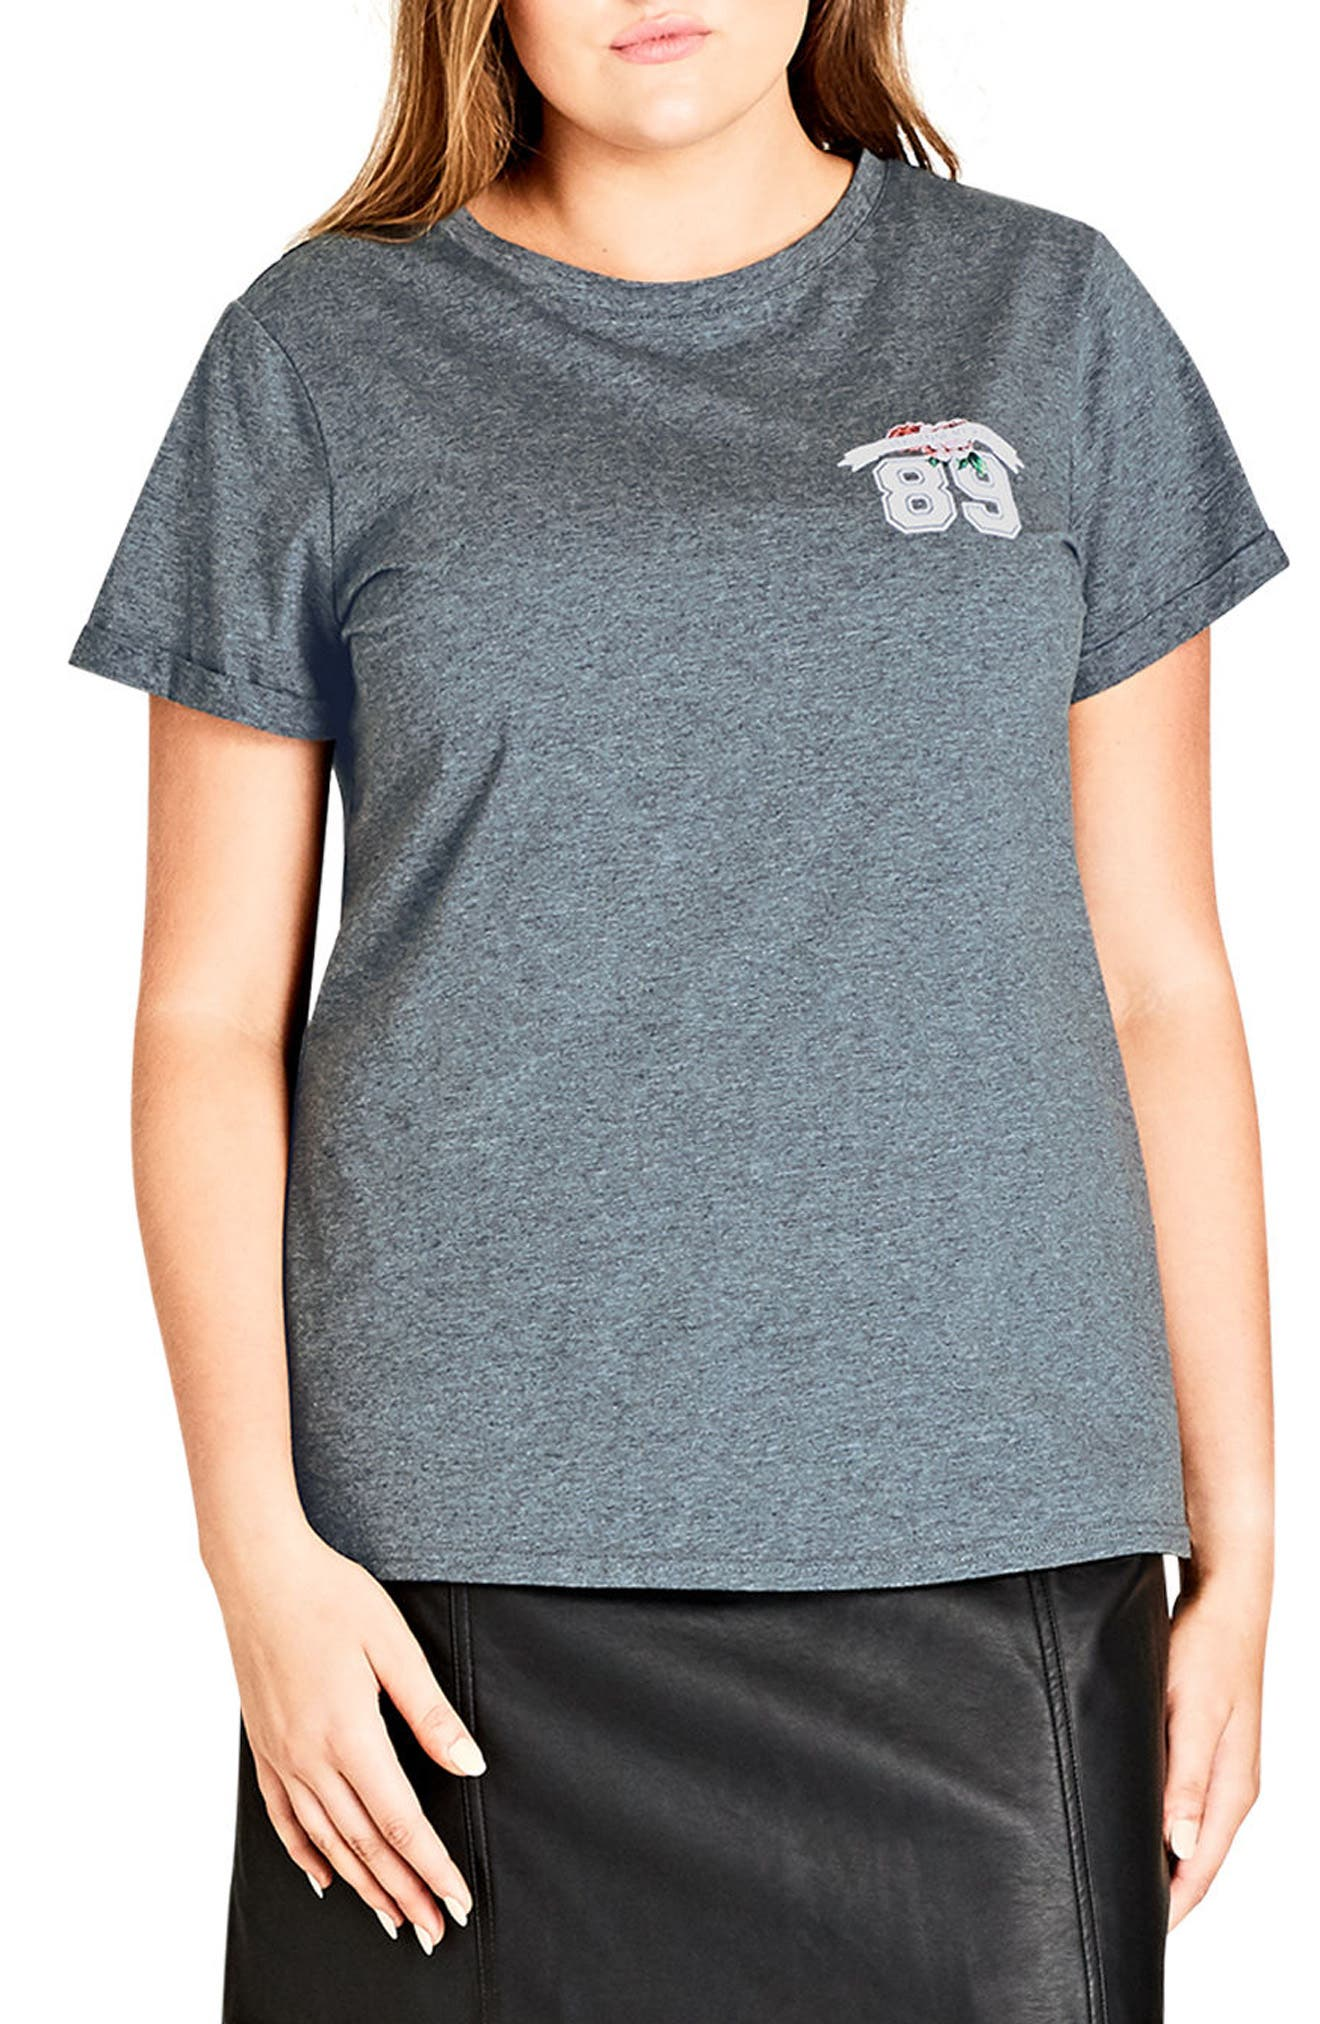 Alternate Image 1 Selected - City Chic Premier Graphic Tee (Plus Size)